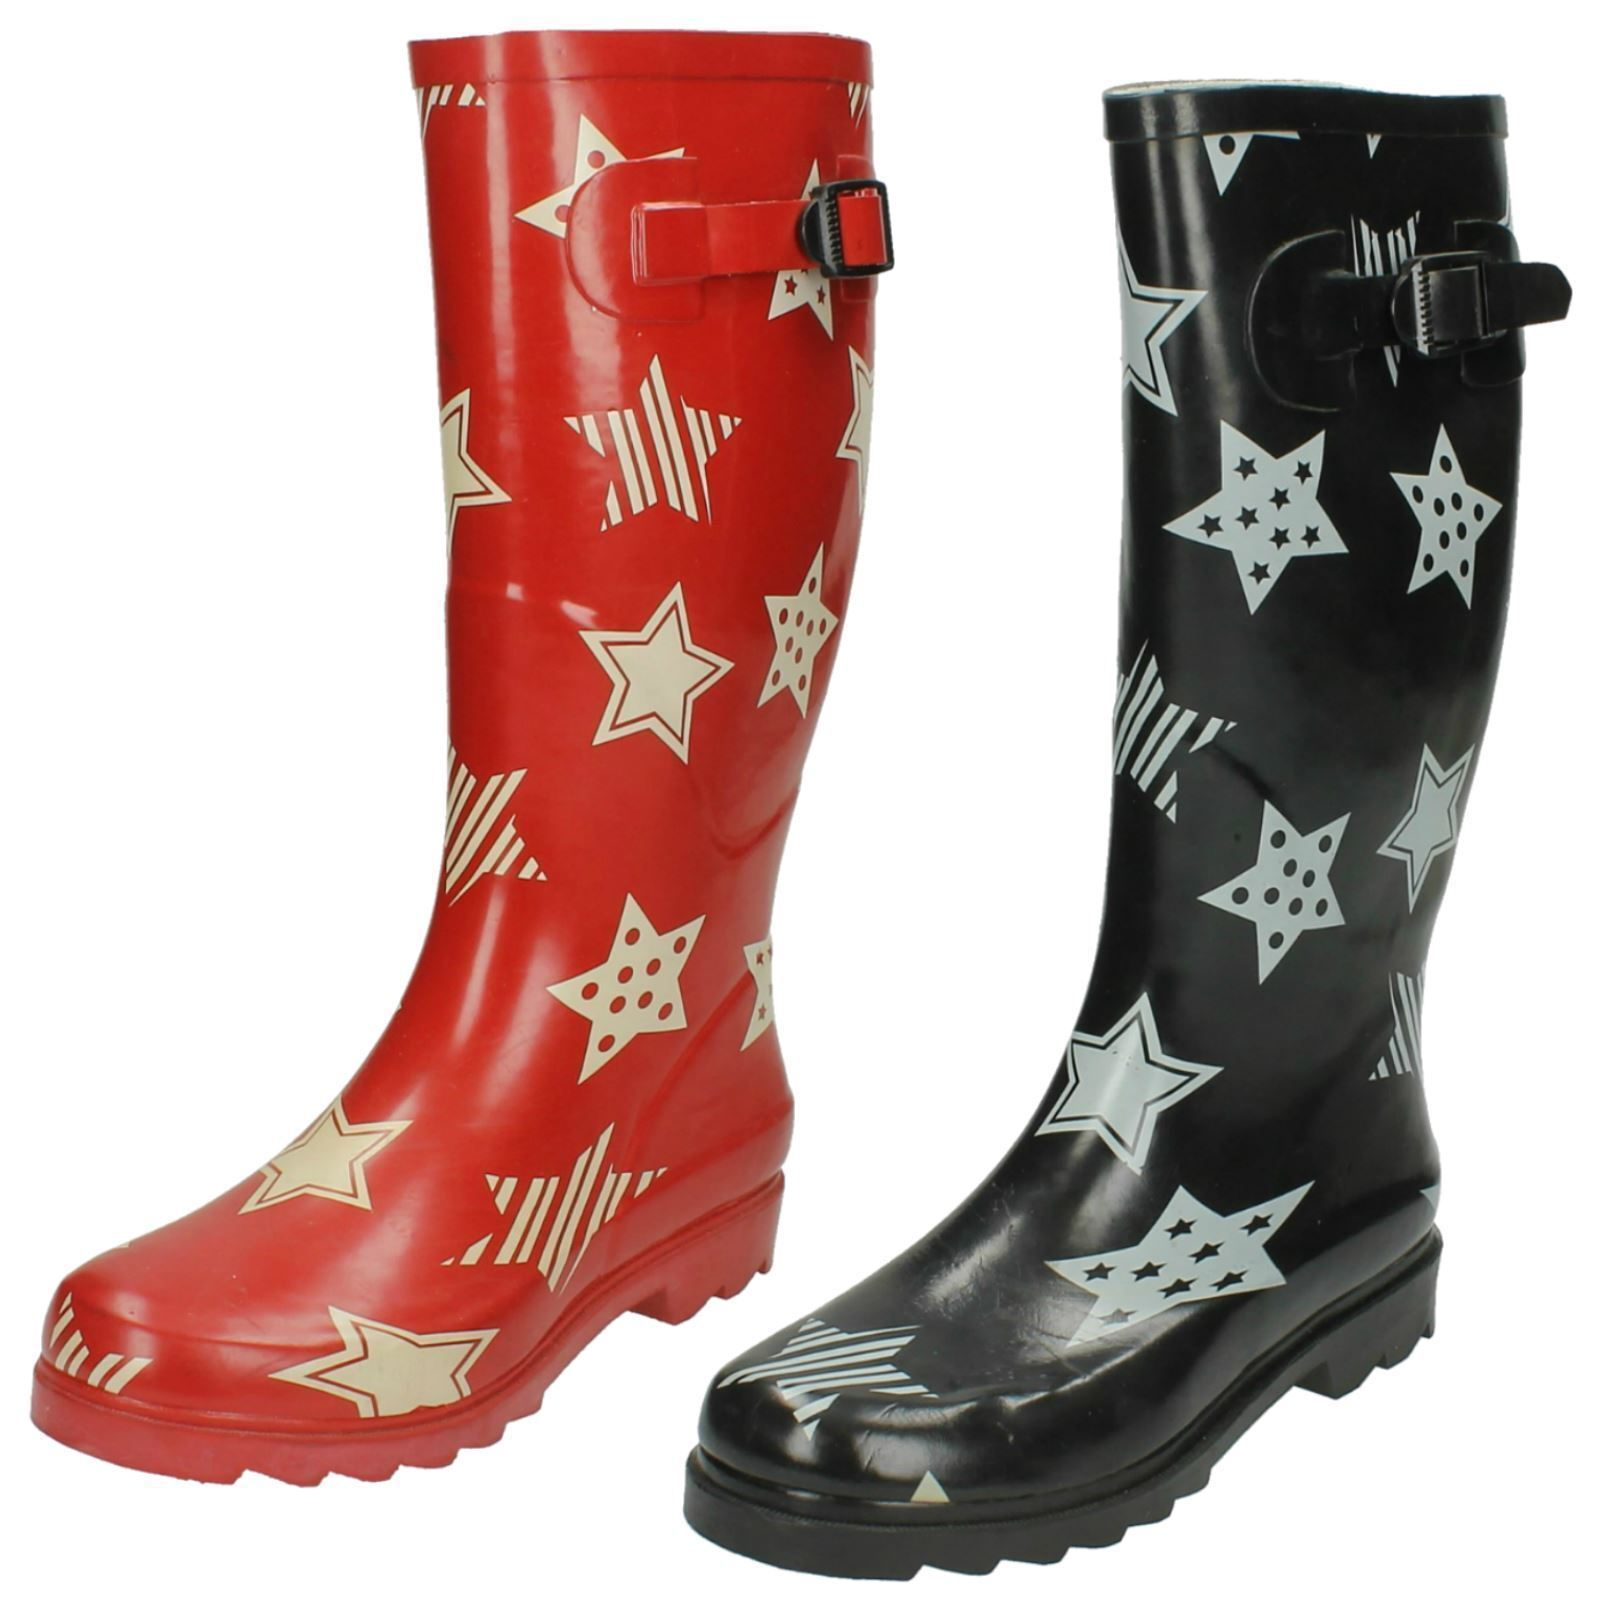 X1044- Ladies Rubber Wellington Boot With White Star Design - 2 Colours!